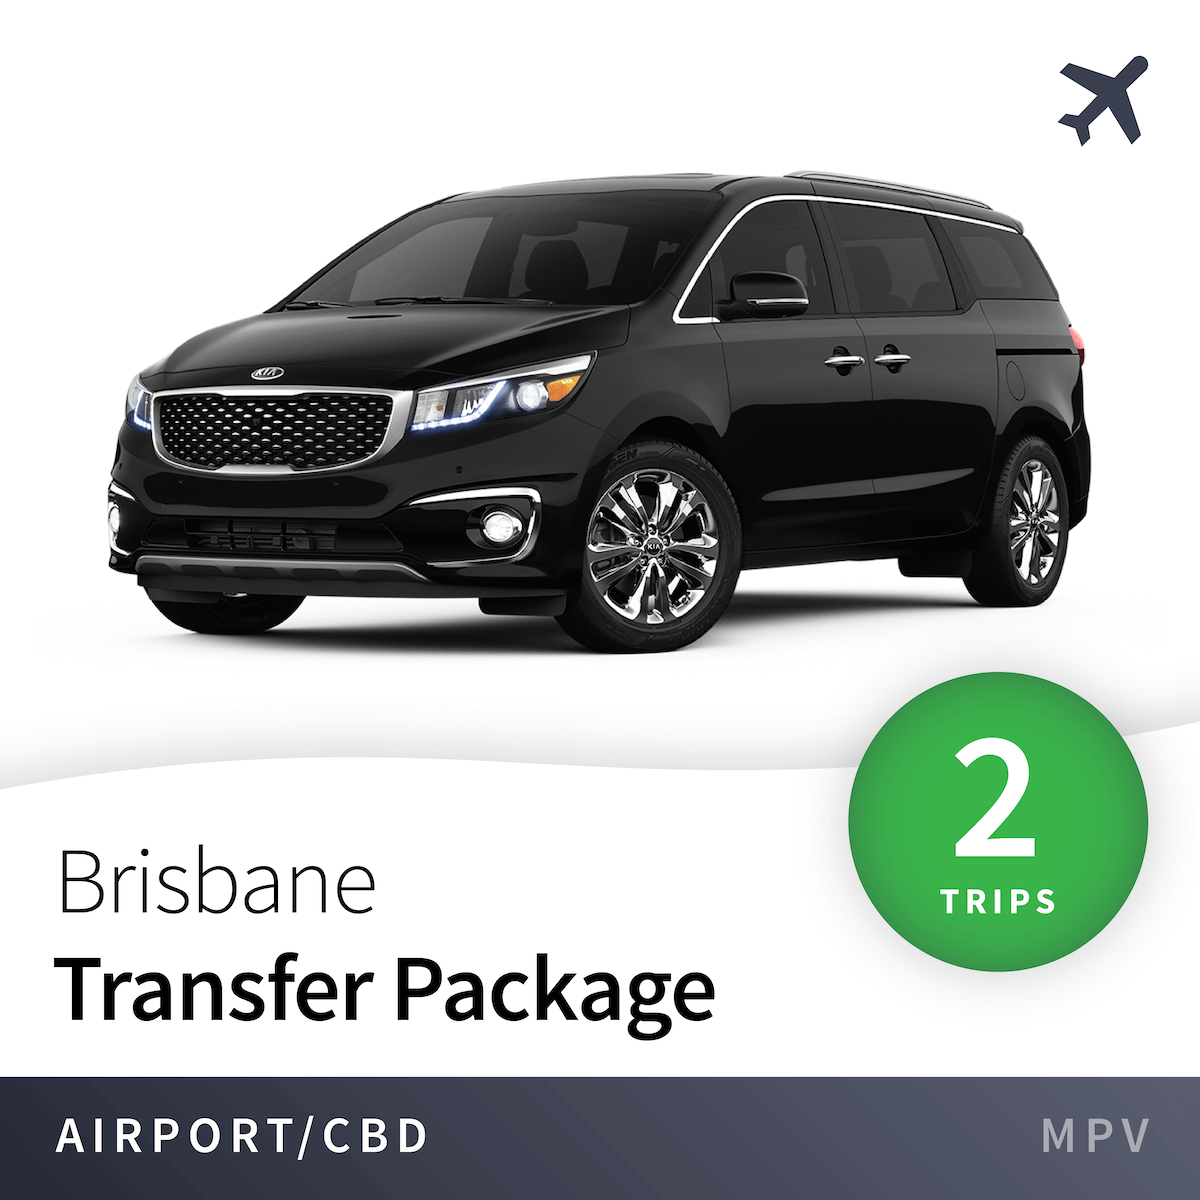 Brisbane Airport Transfer Package - MPV (2 Trips) 8